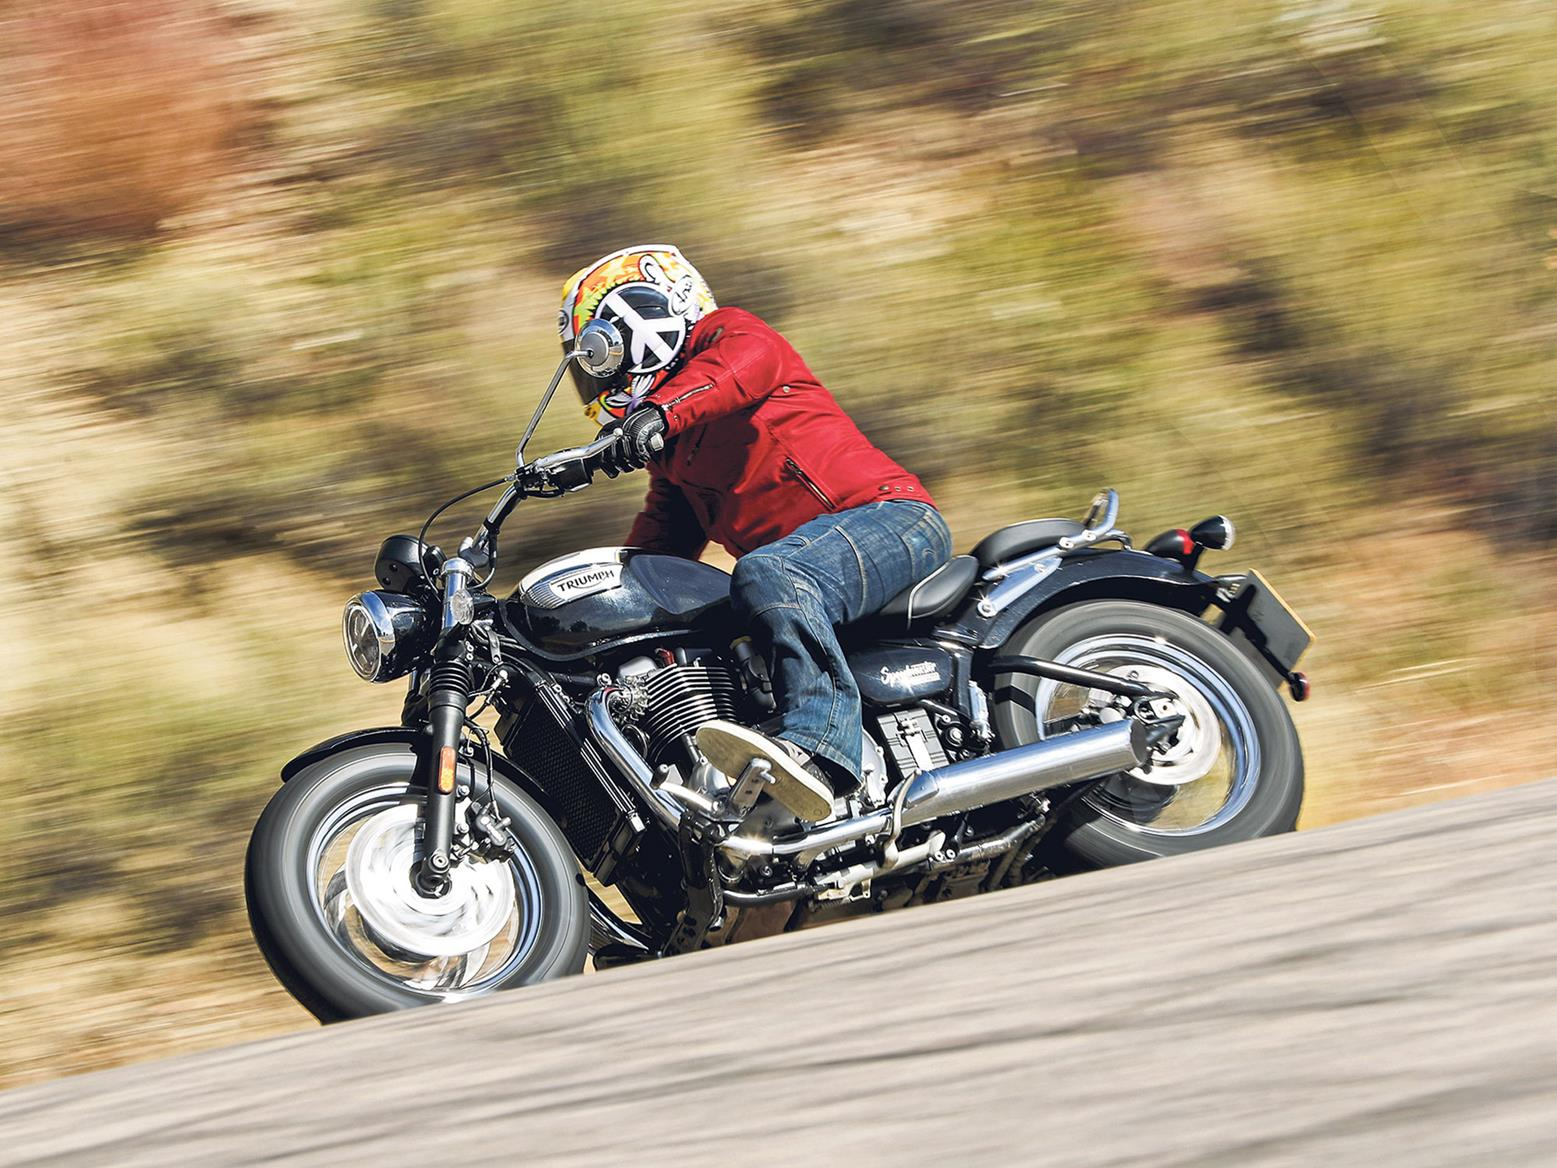 The latest Triumph Bonneville Speedmaster